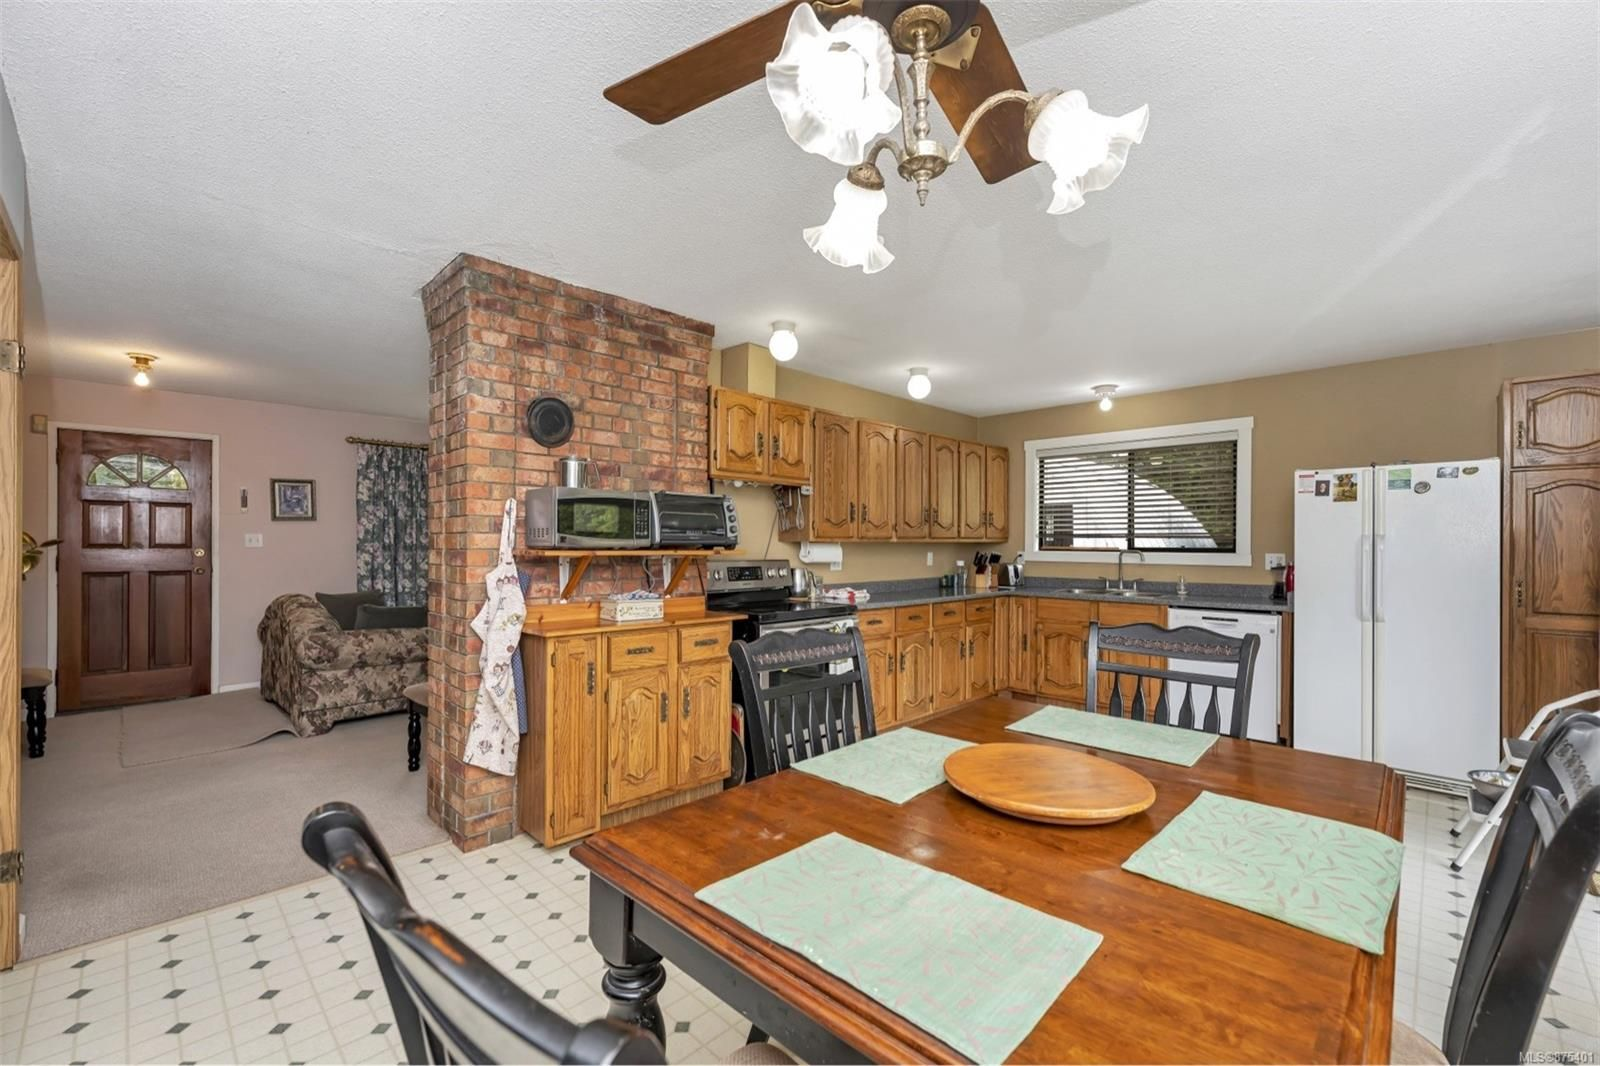 Photo 27: Photos: 6886 Lakes Rd in : Du East Duncan House for sale (Duncan)  : MLS®# 875401